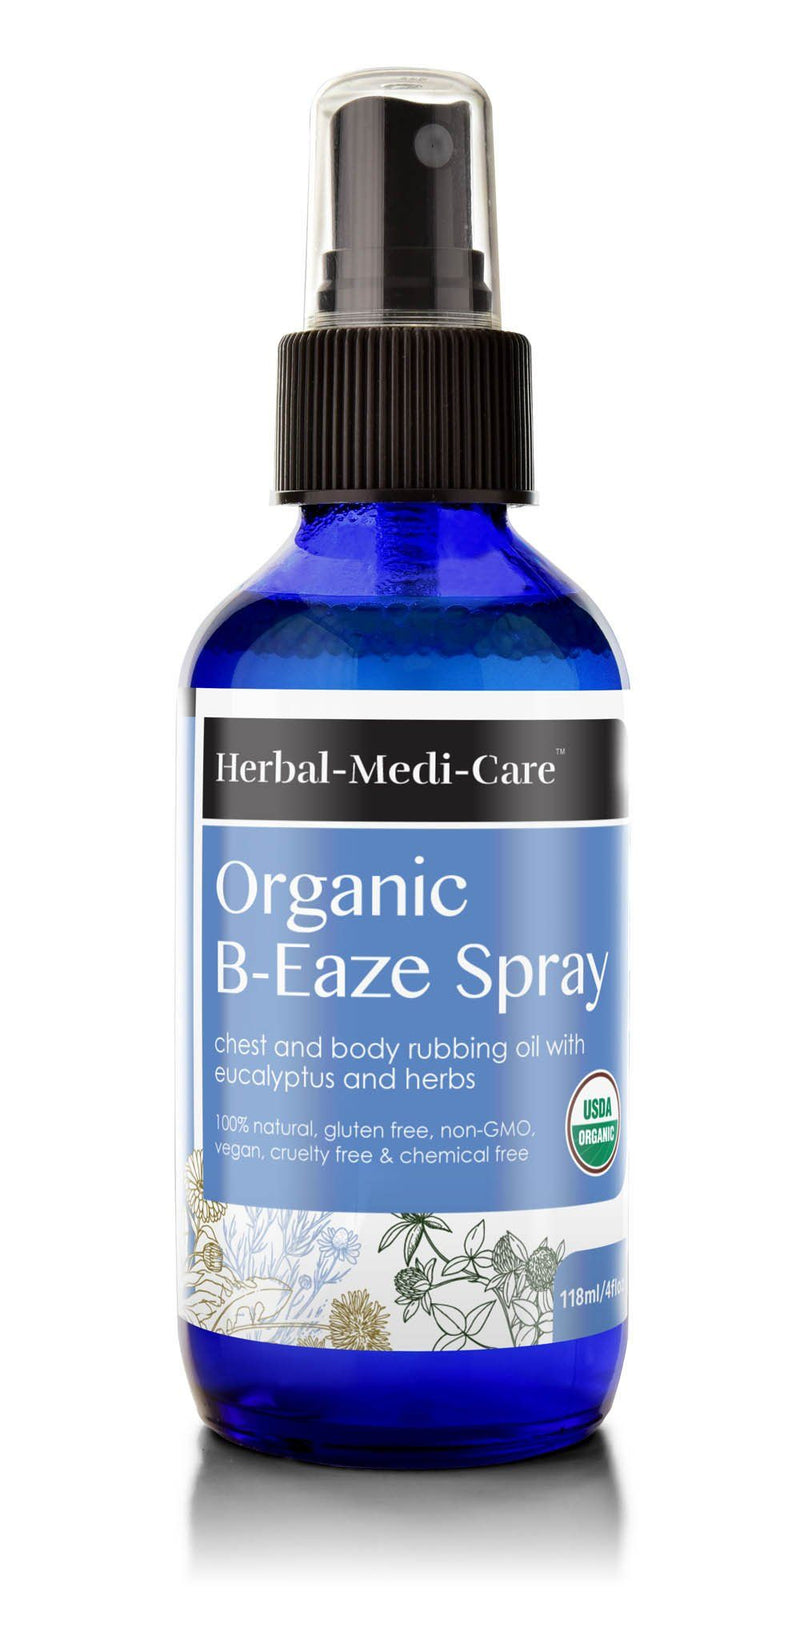 Herbal-Medi-Care Organic B-Eaze (Congestion) Spray; 4floz - Herbal-Medi-Care Organic B-Eaze (Congestion) Spray; 4floz - Herbal-Medi-Care Organic B-Eaze (Congestion) Spray; 4floz